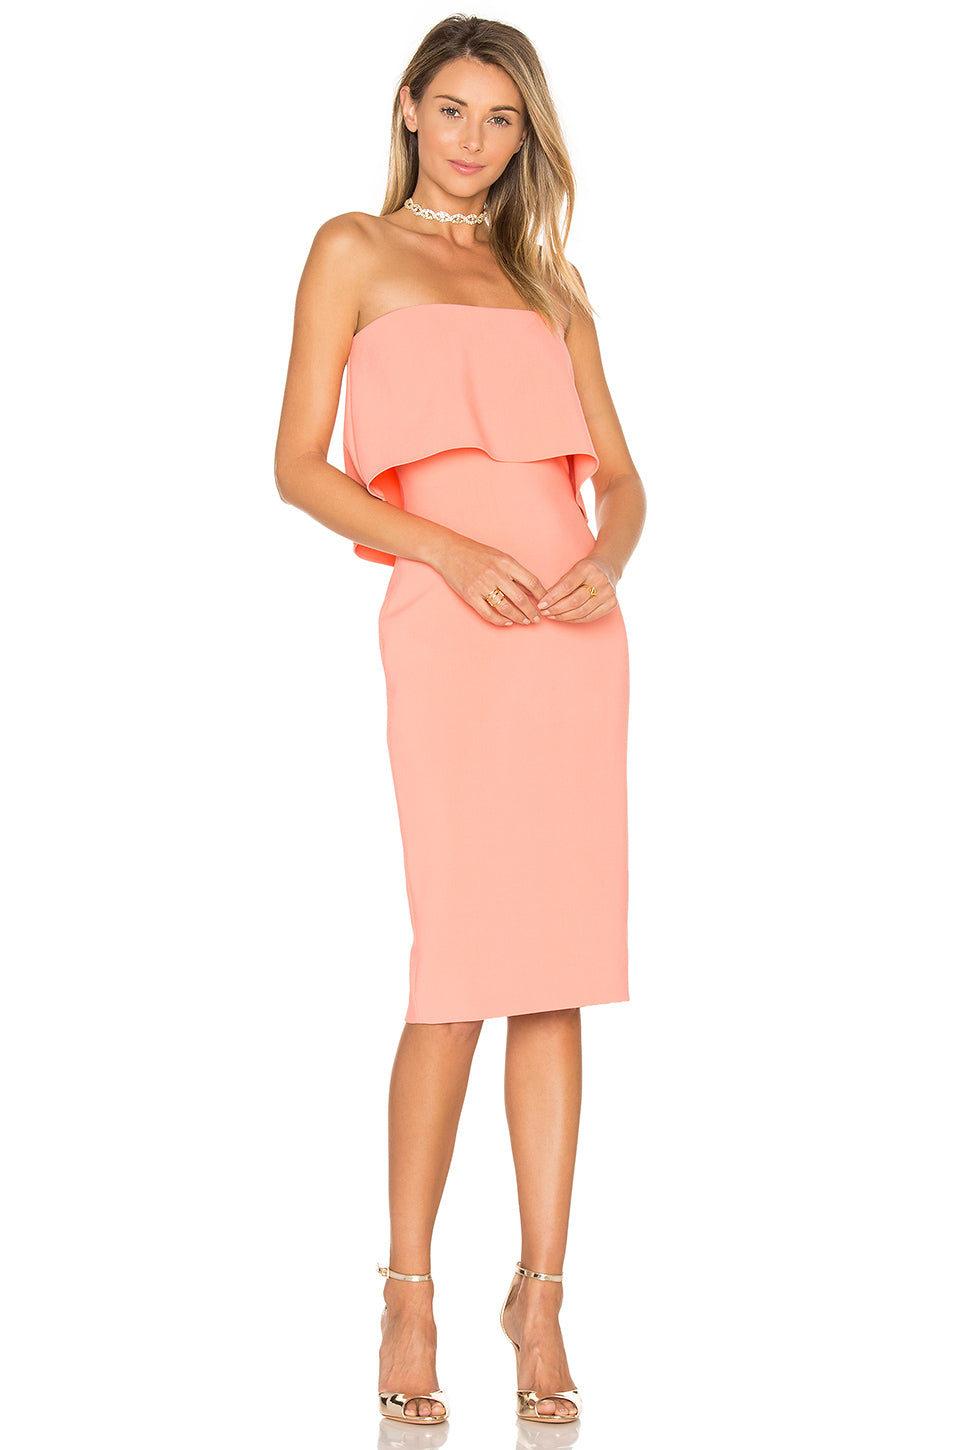 Strapless Driggs Dress Peach- Robe Driggs sans manches